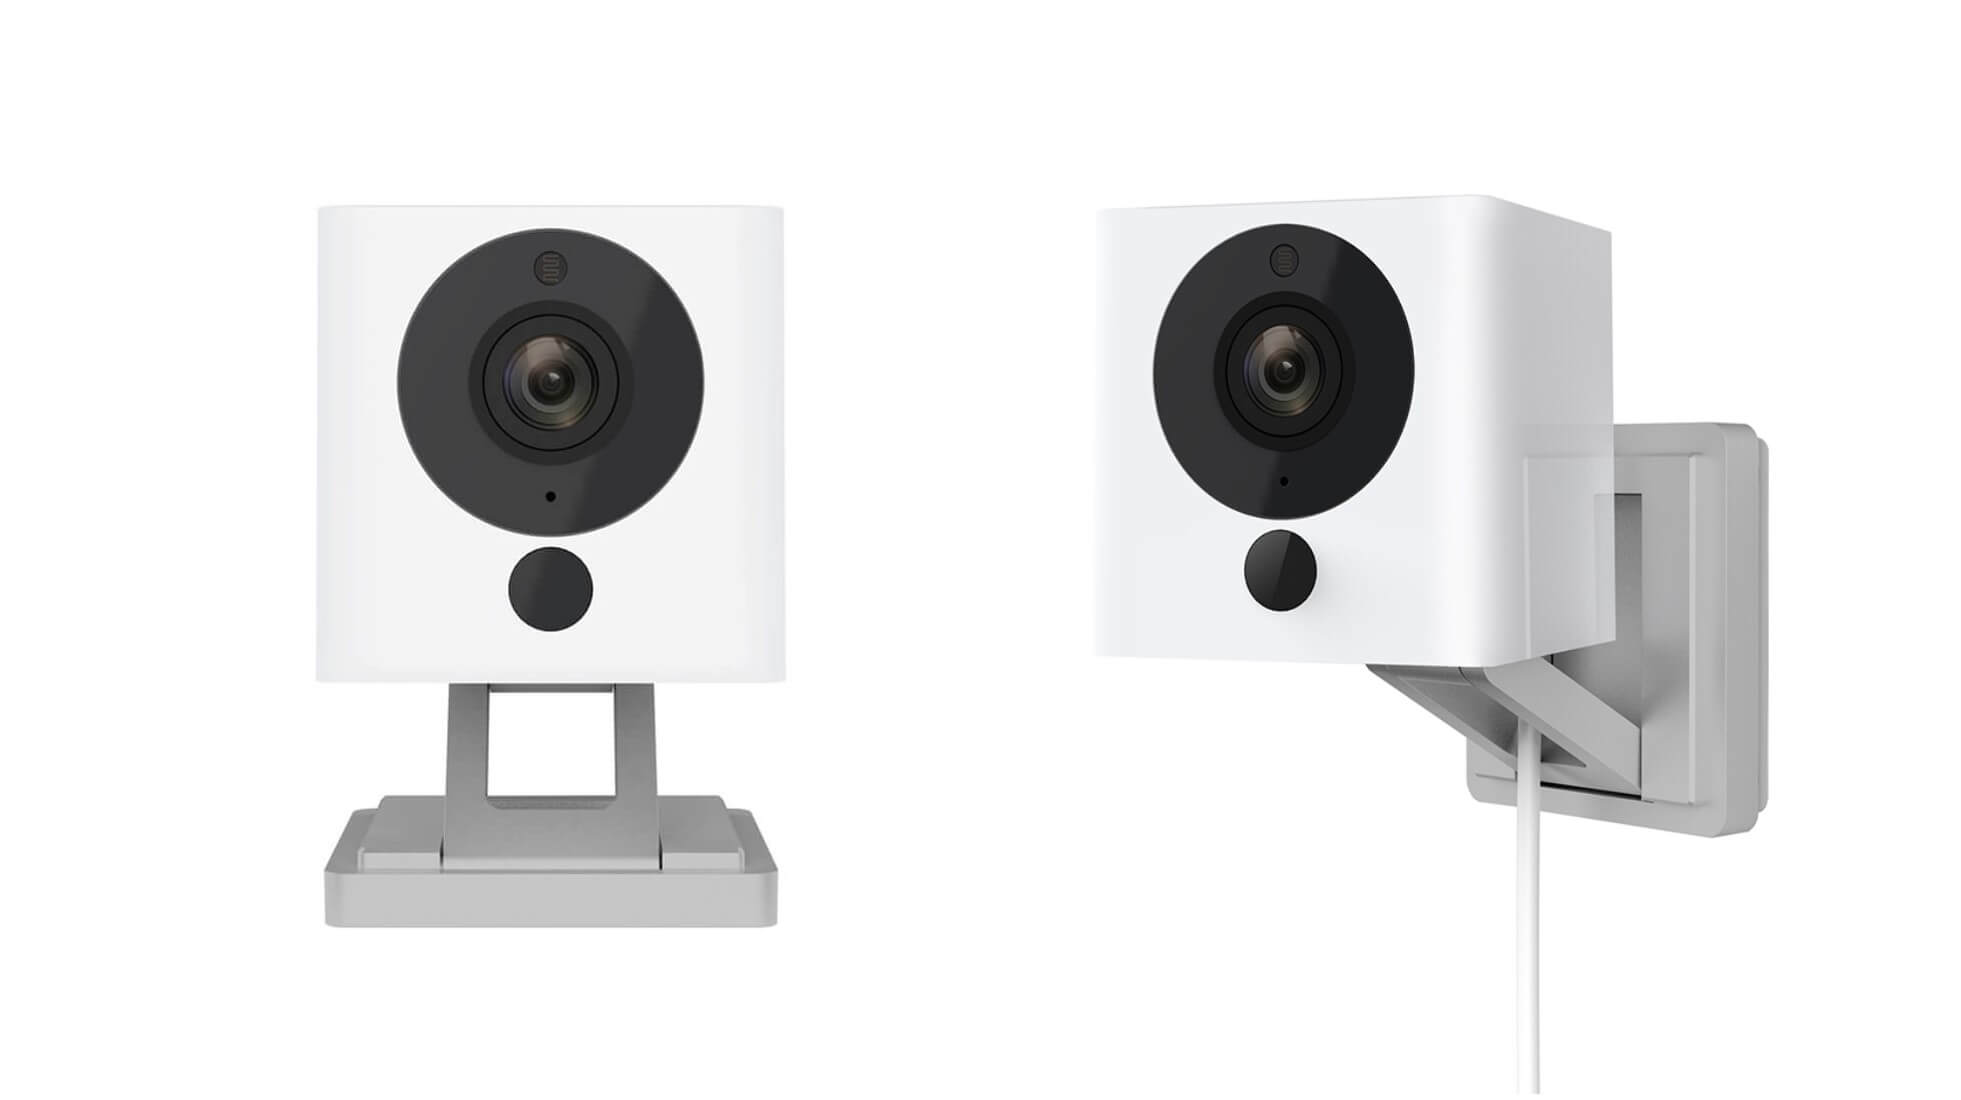 Modify the Xiaomi Xiaofang Camera to Work With Home